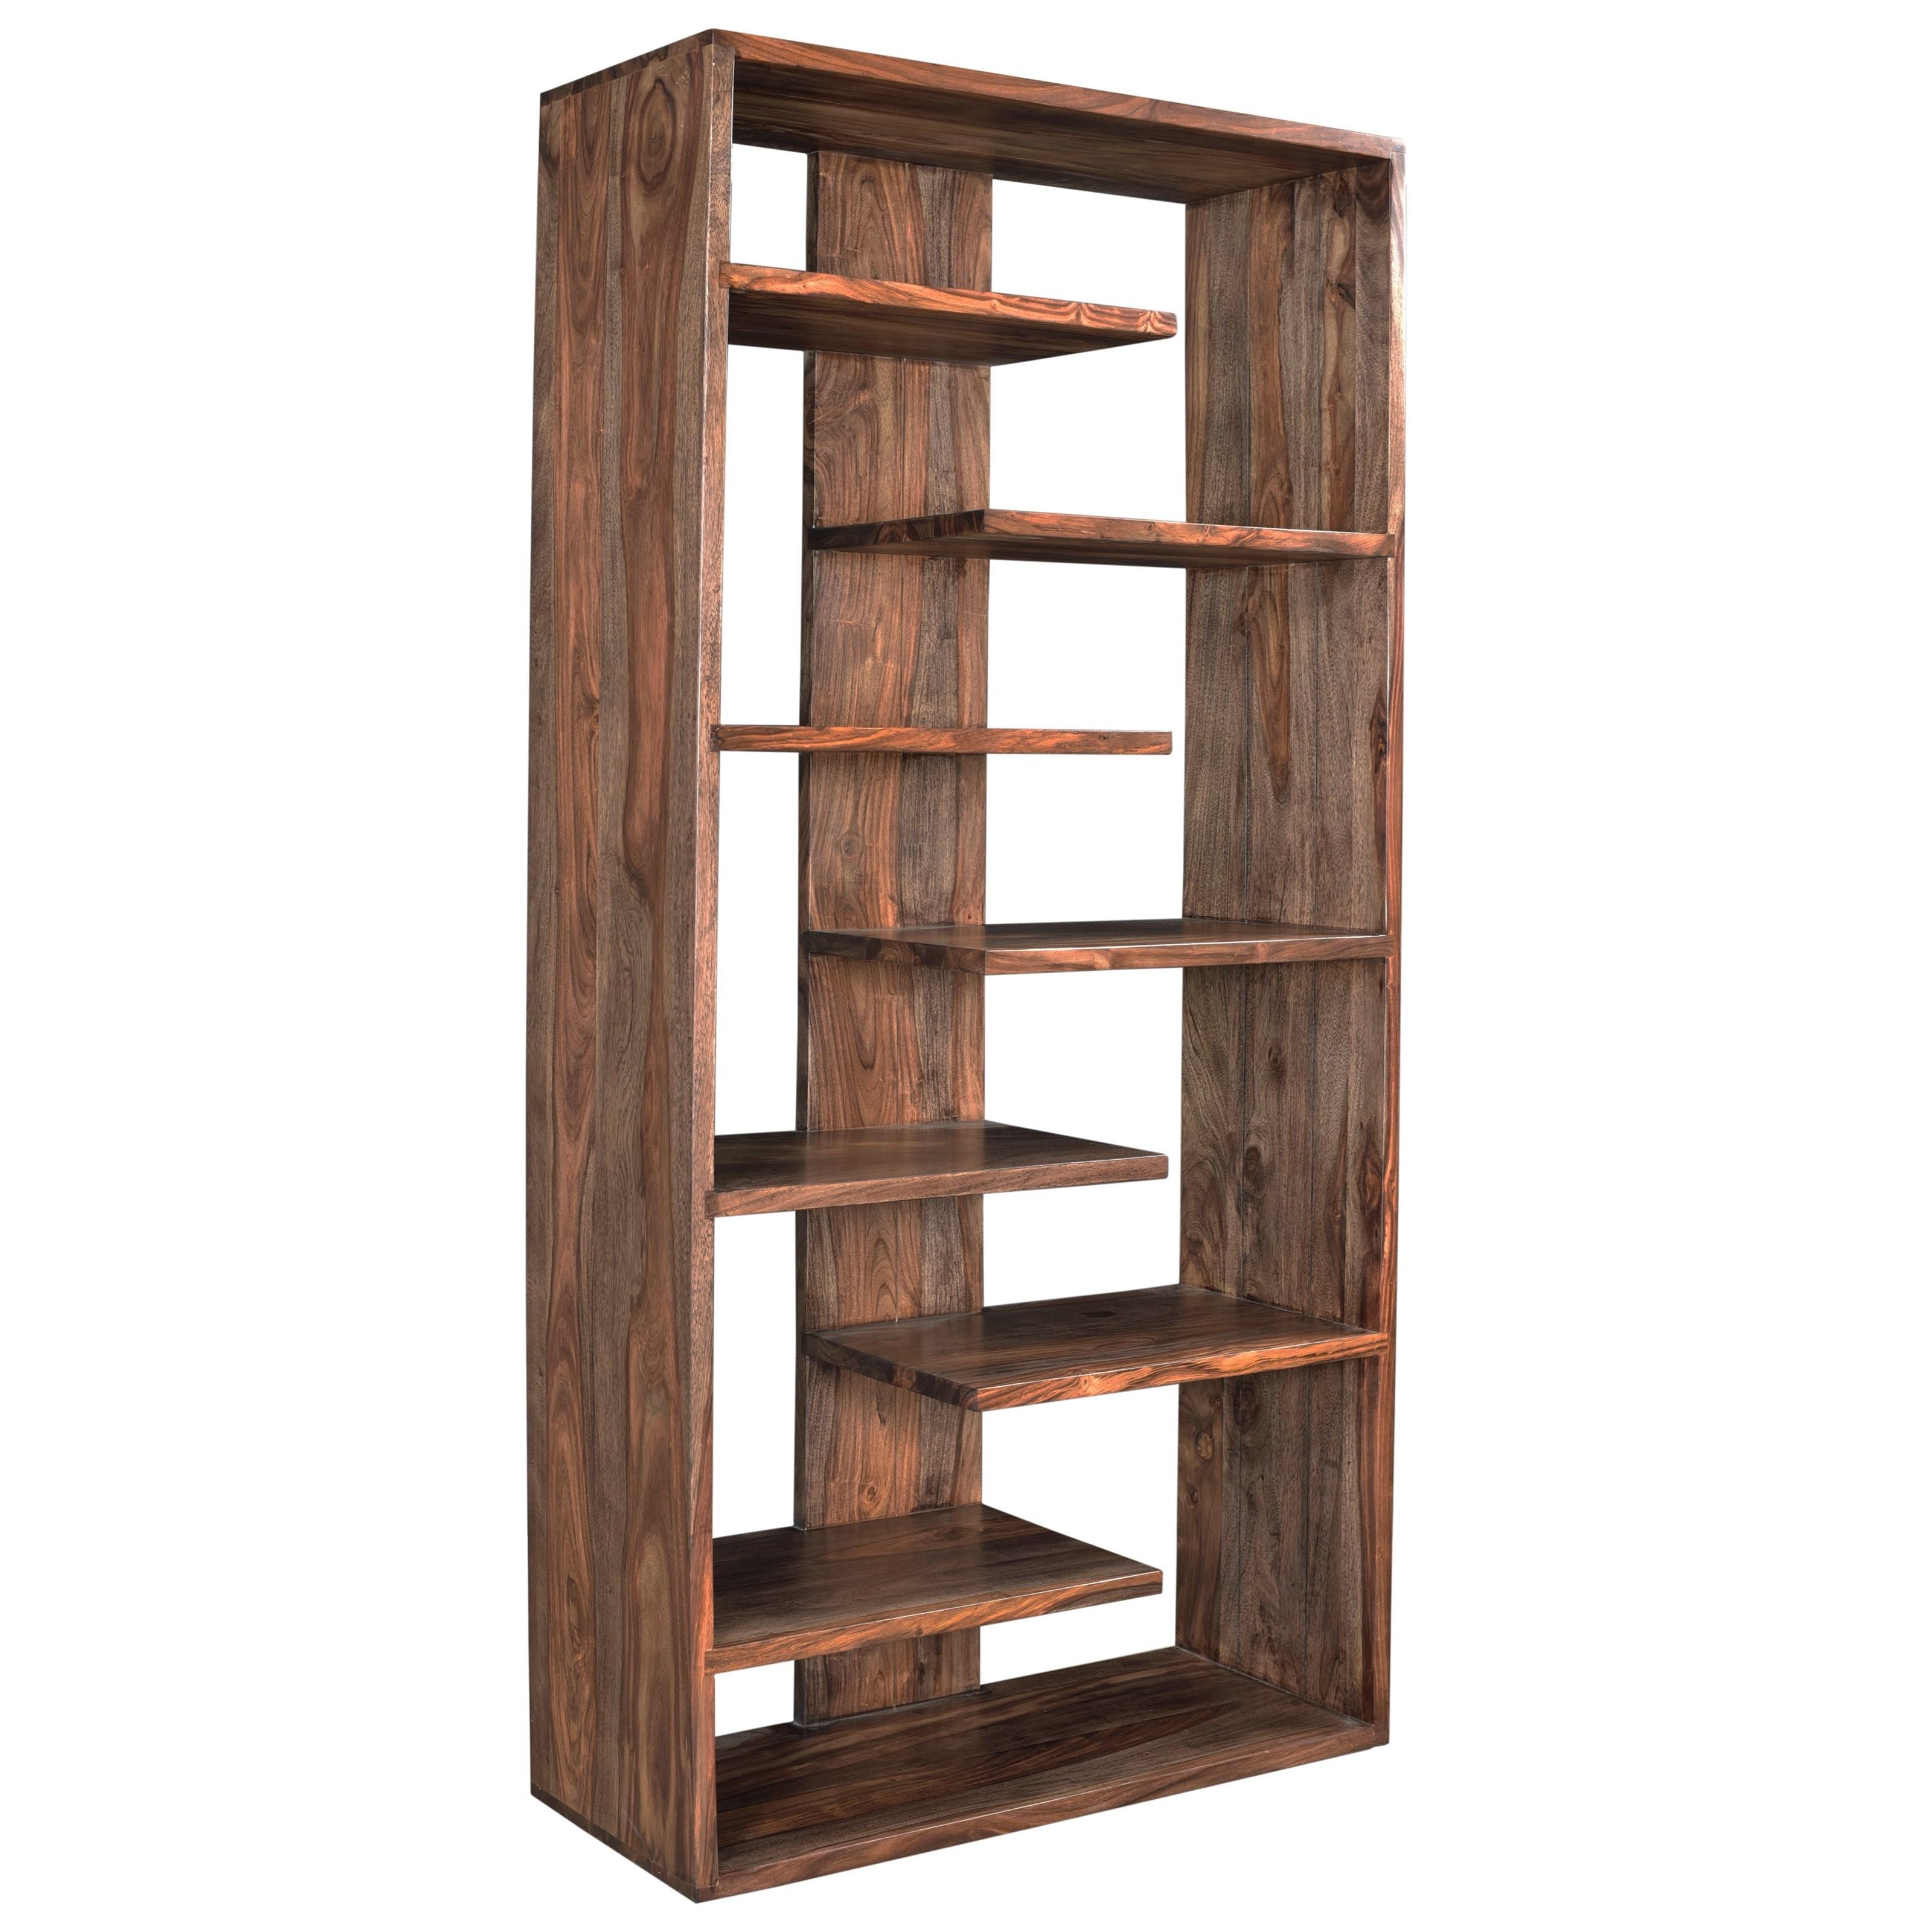 Gilliam Brownstone Bookcase by C2C at Walker's Furniture